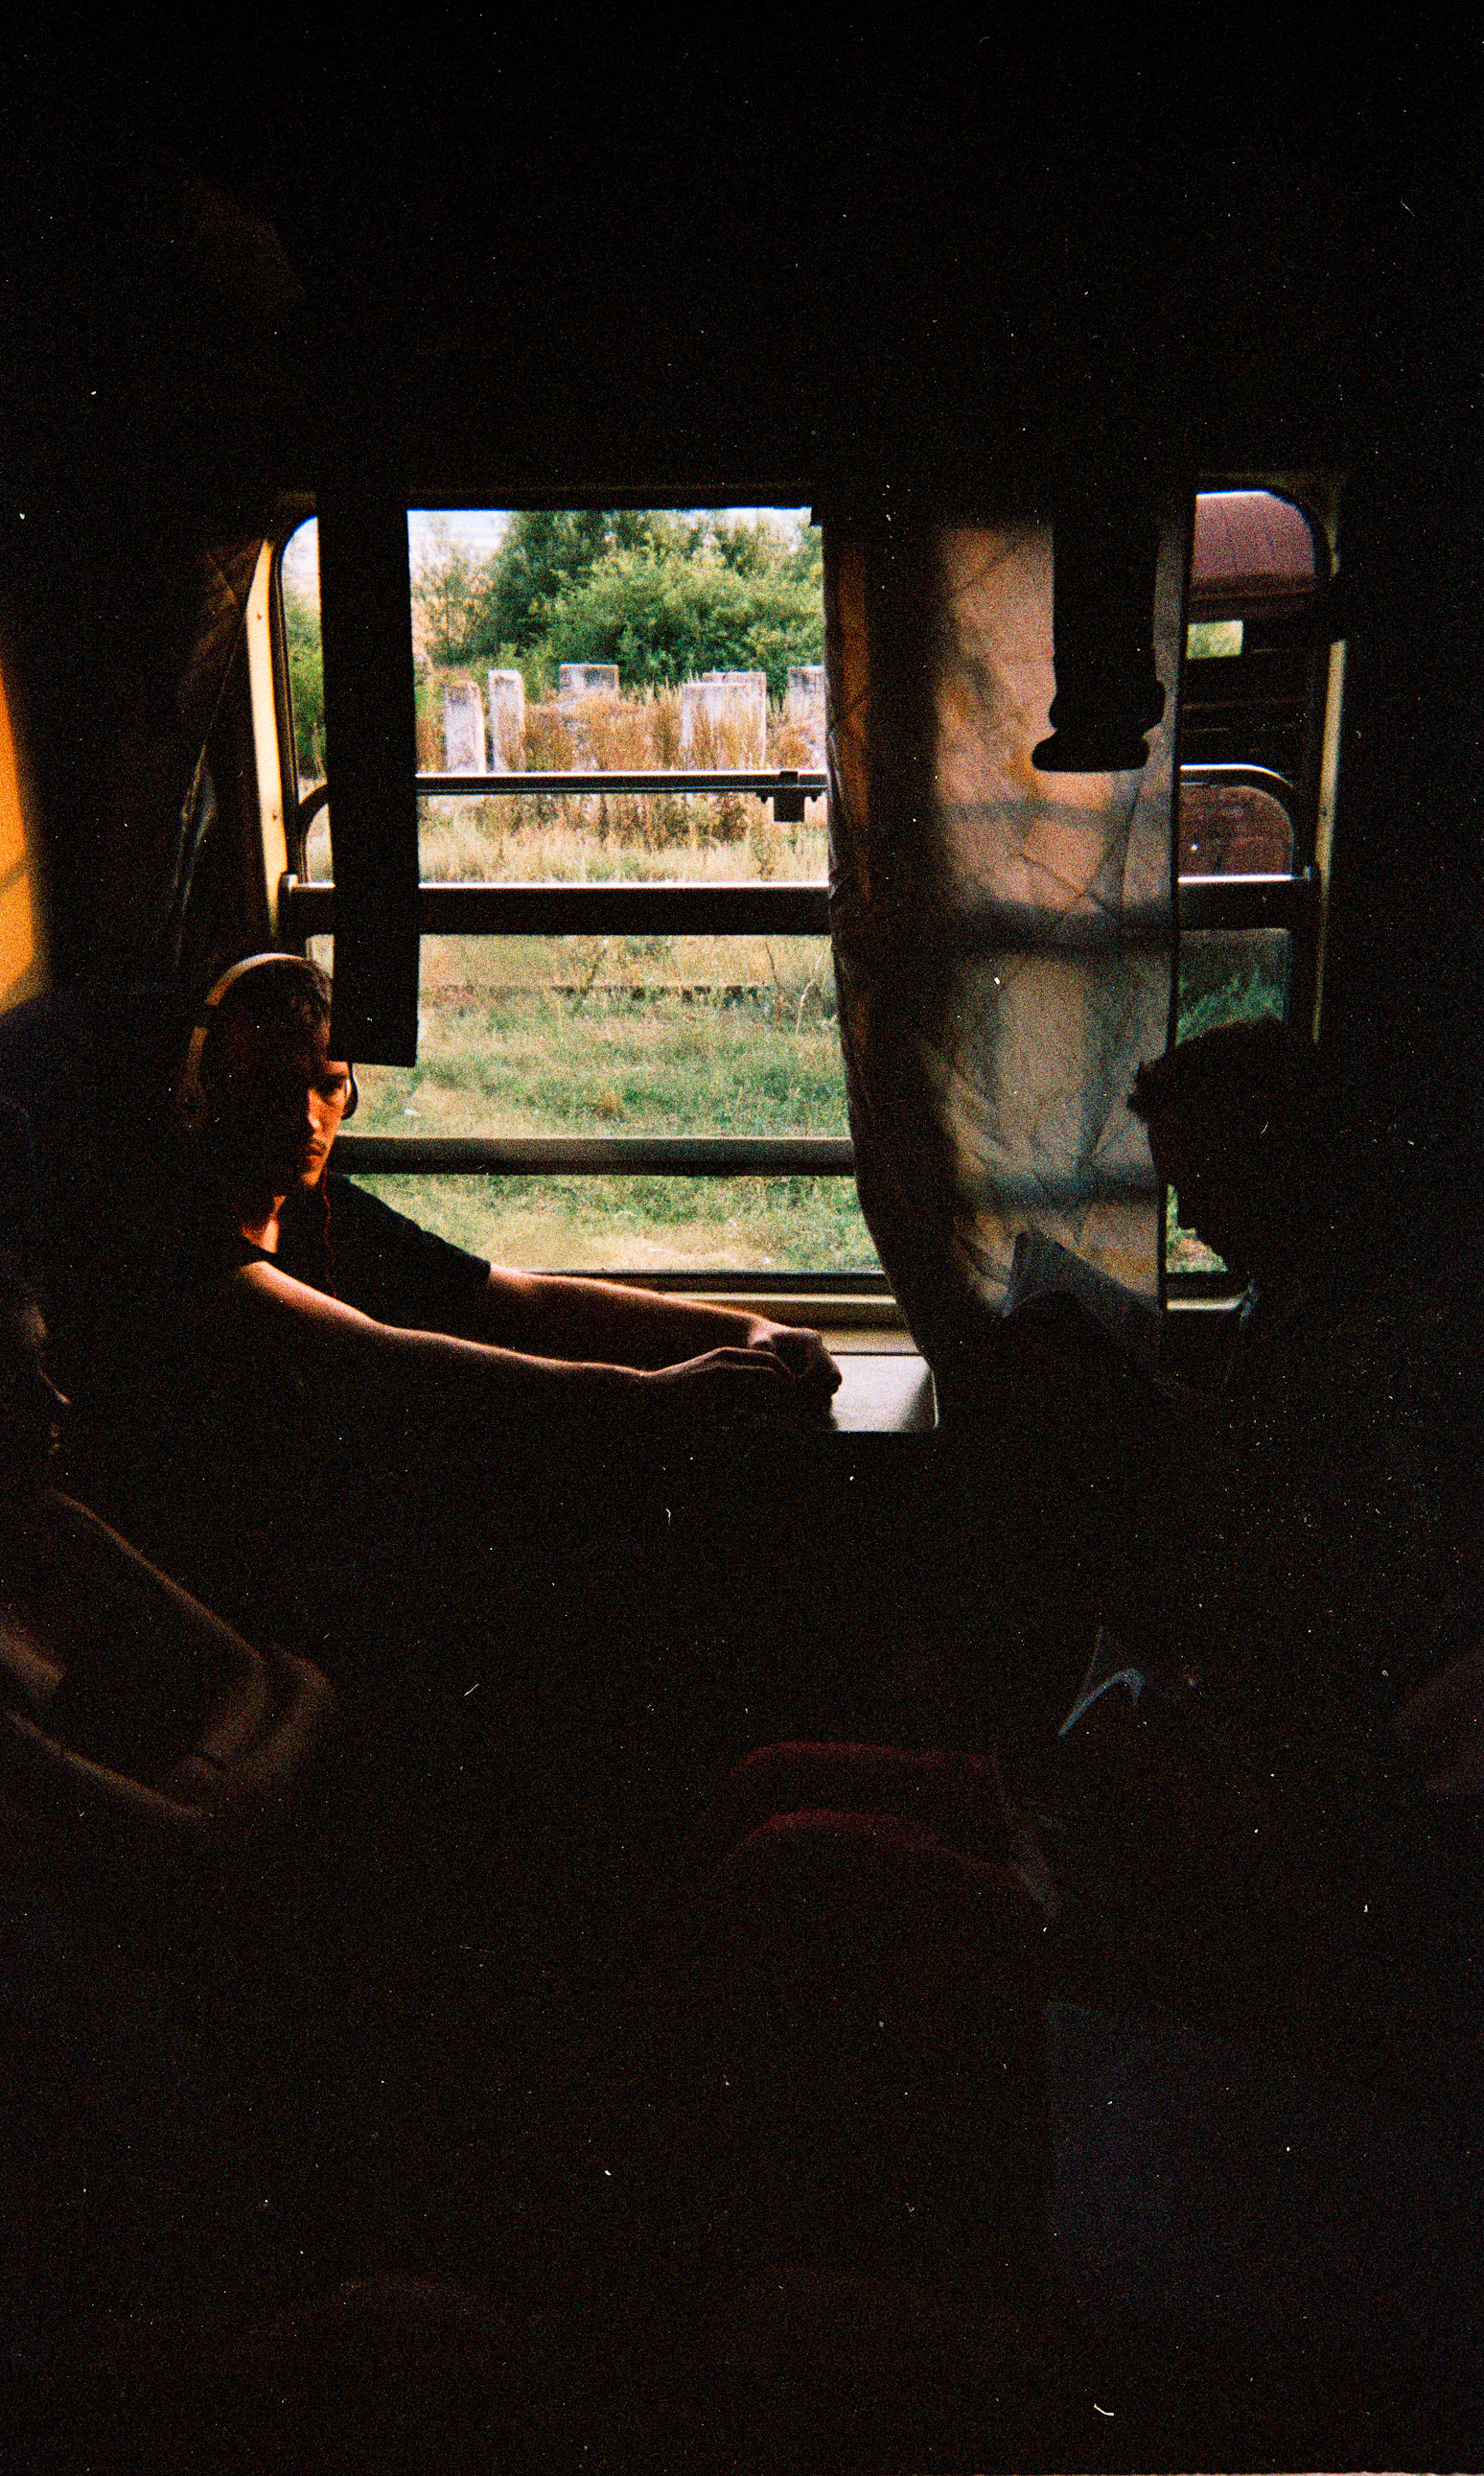 Eastern Europe Disposable (2013)   Traveling to Istanbul through Eastern Europe by train with two disposable cameras.